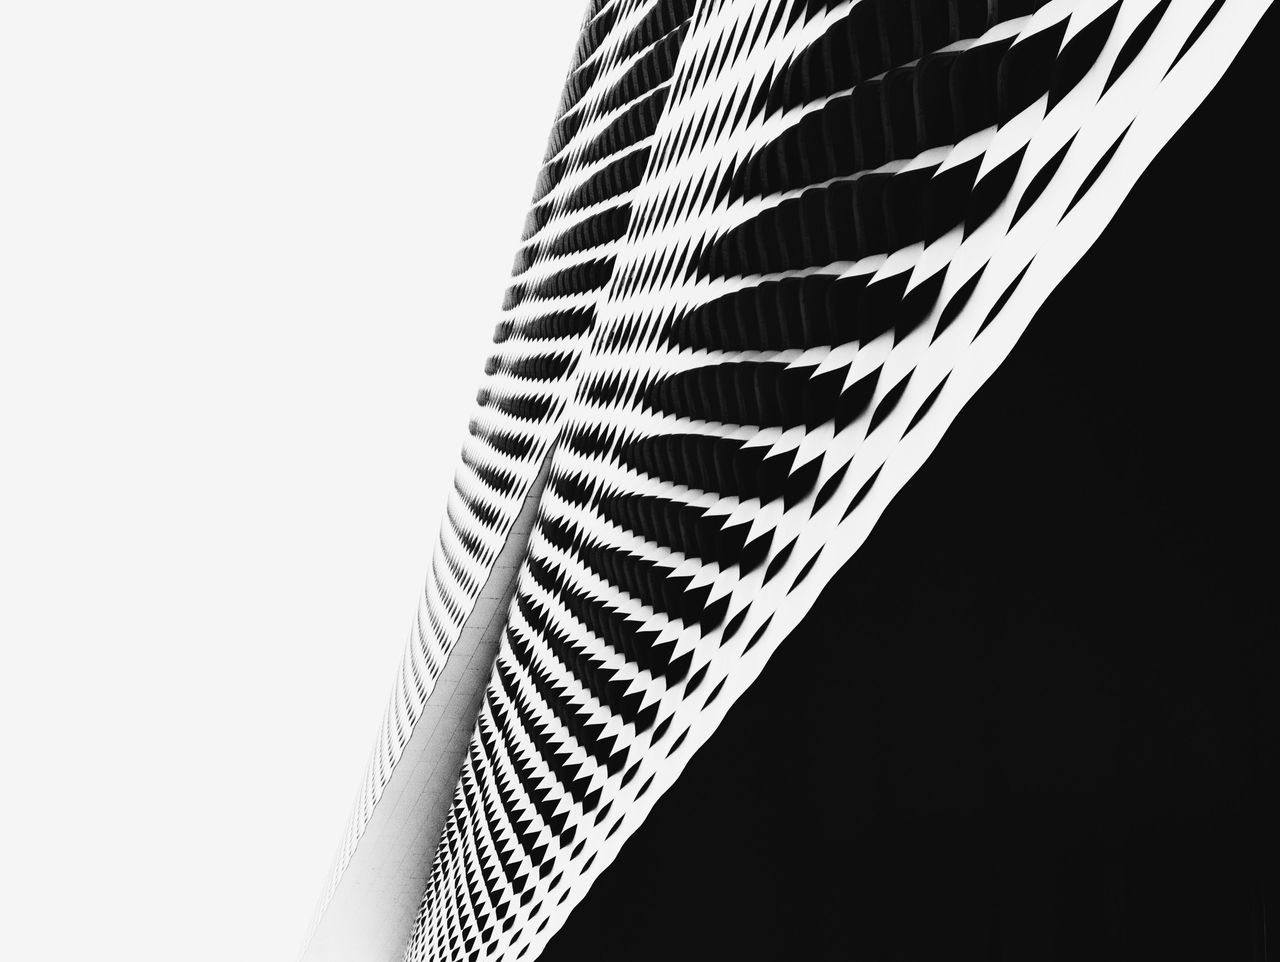 Low Angle View Clear Sky No People Built Structure Outdoors Architecture Day Skyscraper White Background Basel Switzerland Black & White Street The Architect - 2017 EyeEm Awards